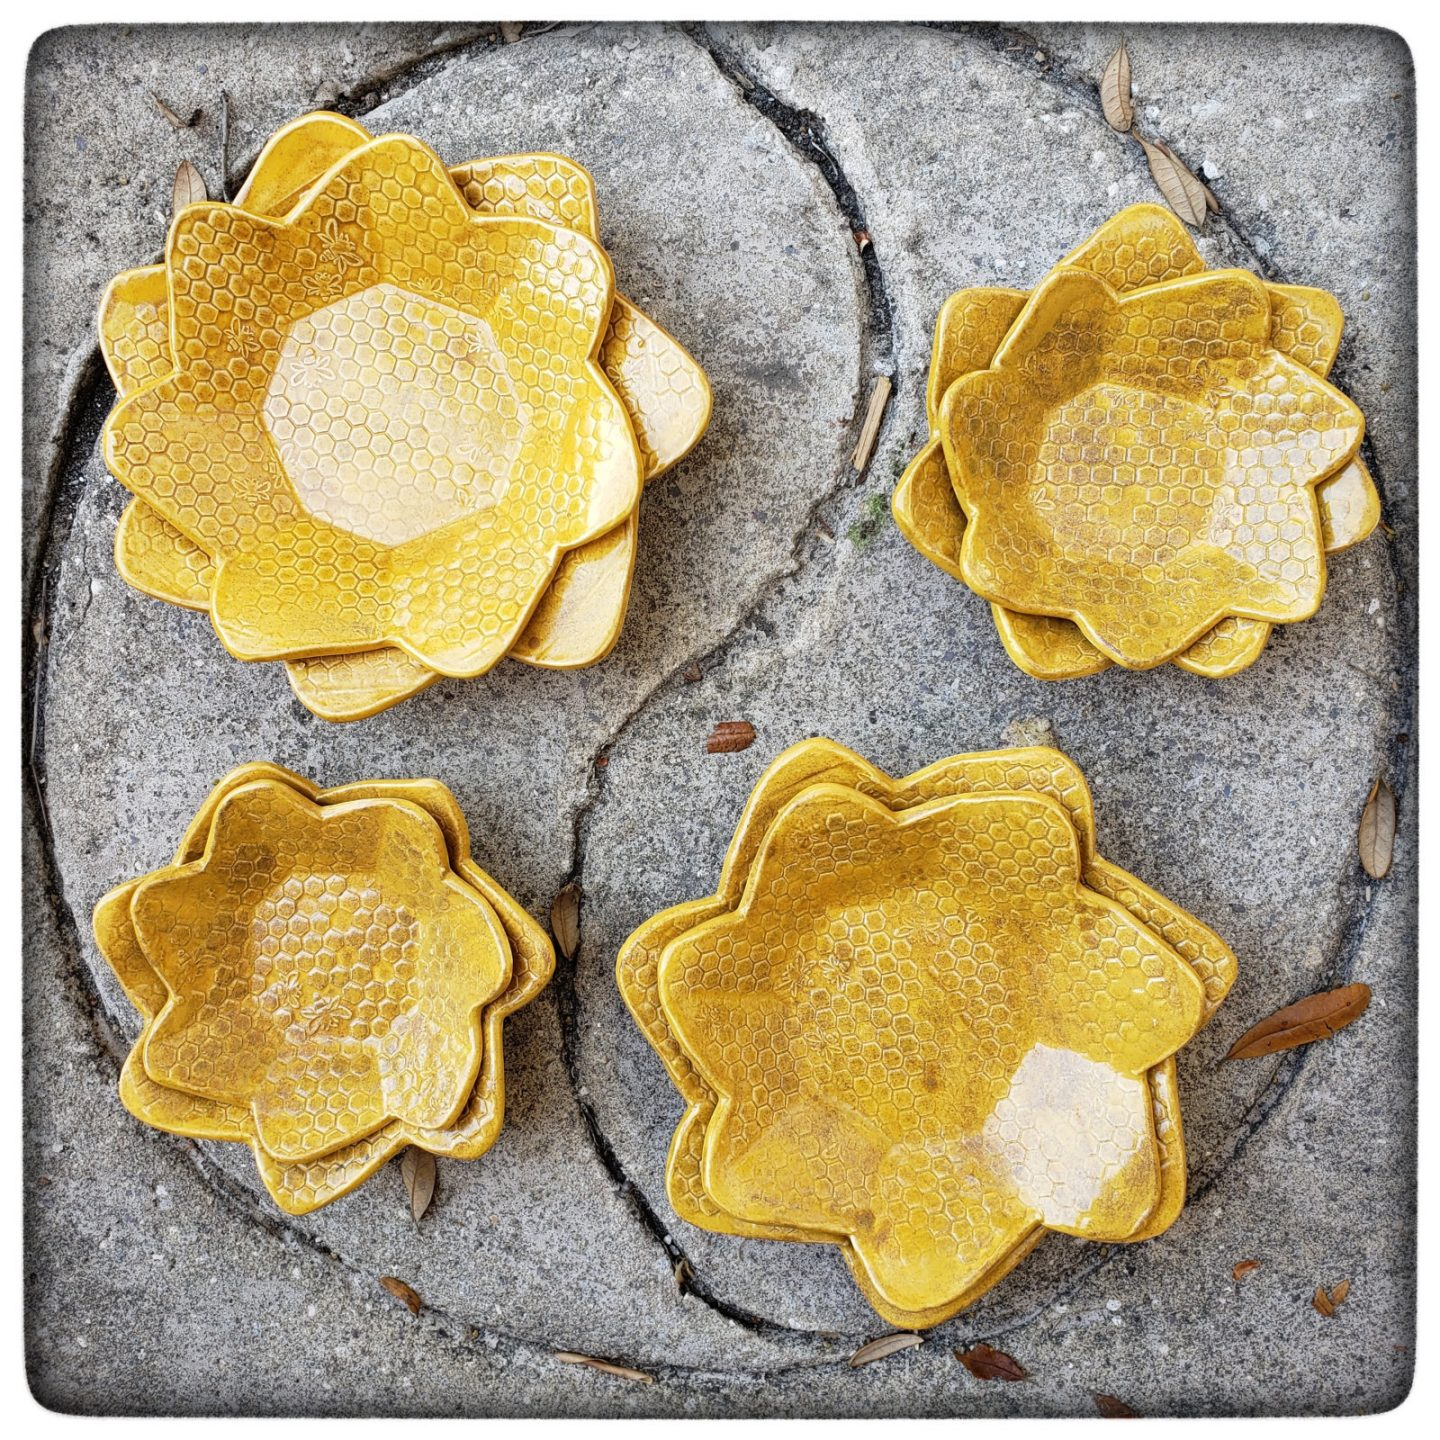 New in the shop: Nesting Honeycomb Dishes